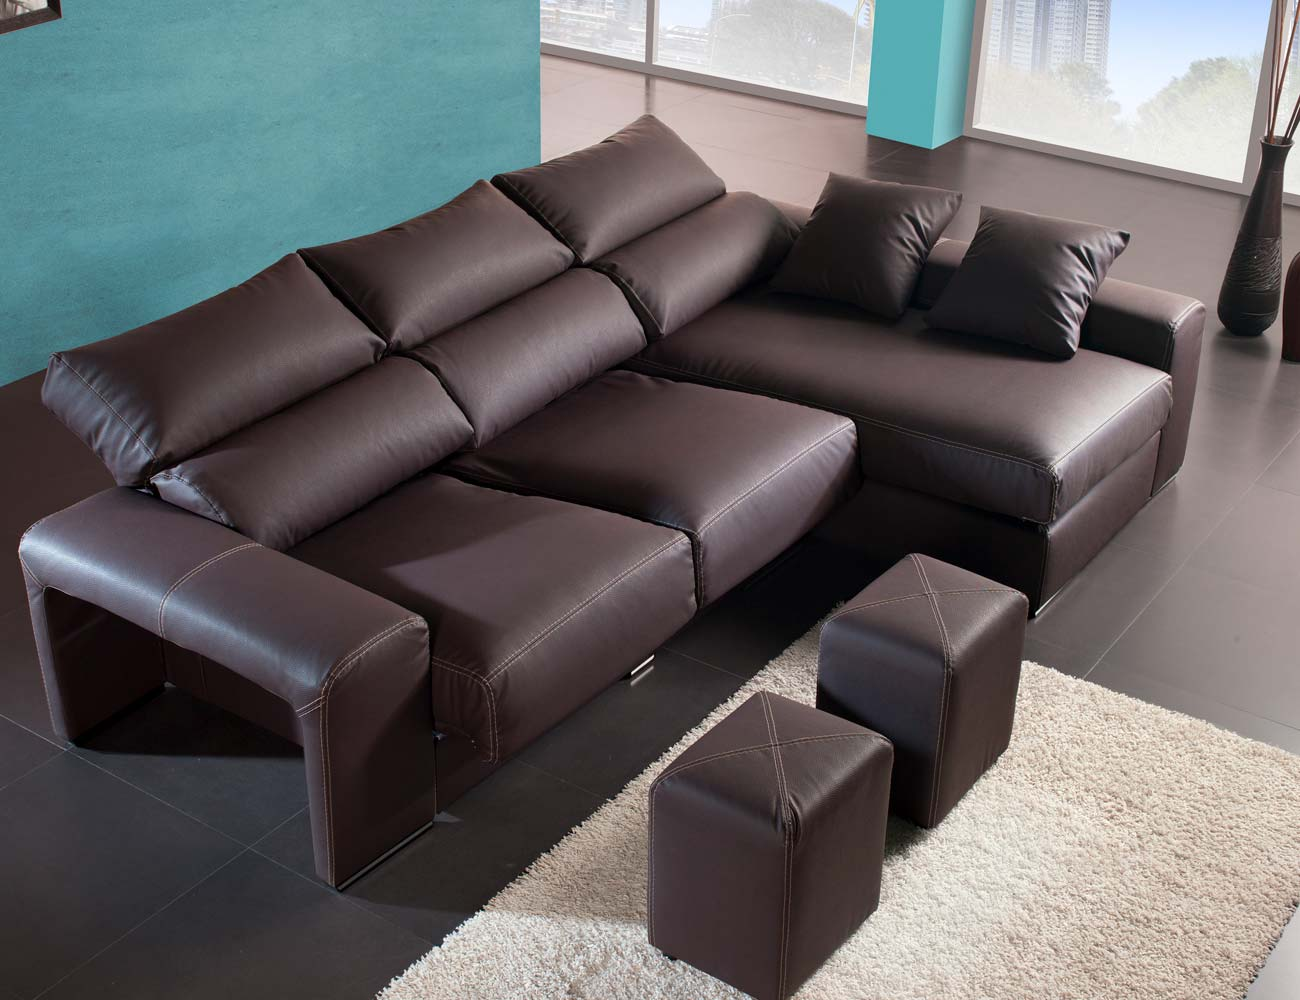 Sofa chaiselongue moderno polipiel chocolate poufs taburetes9